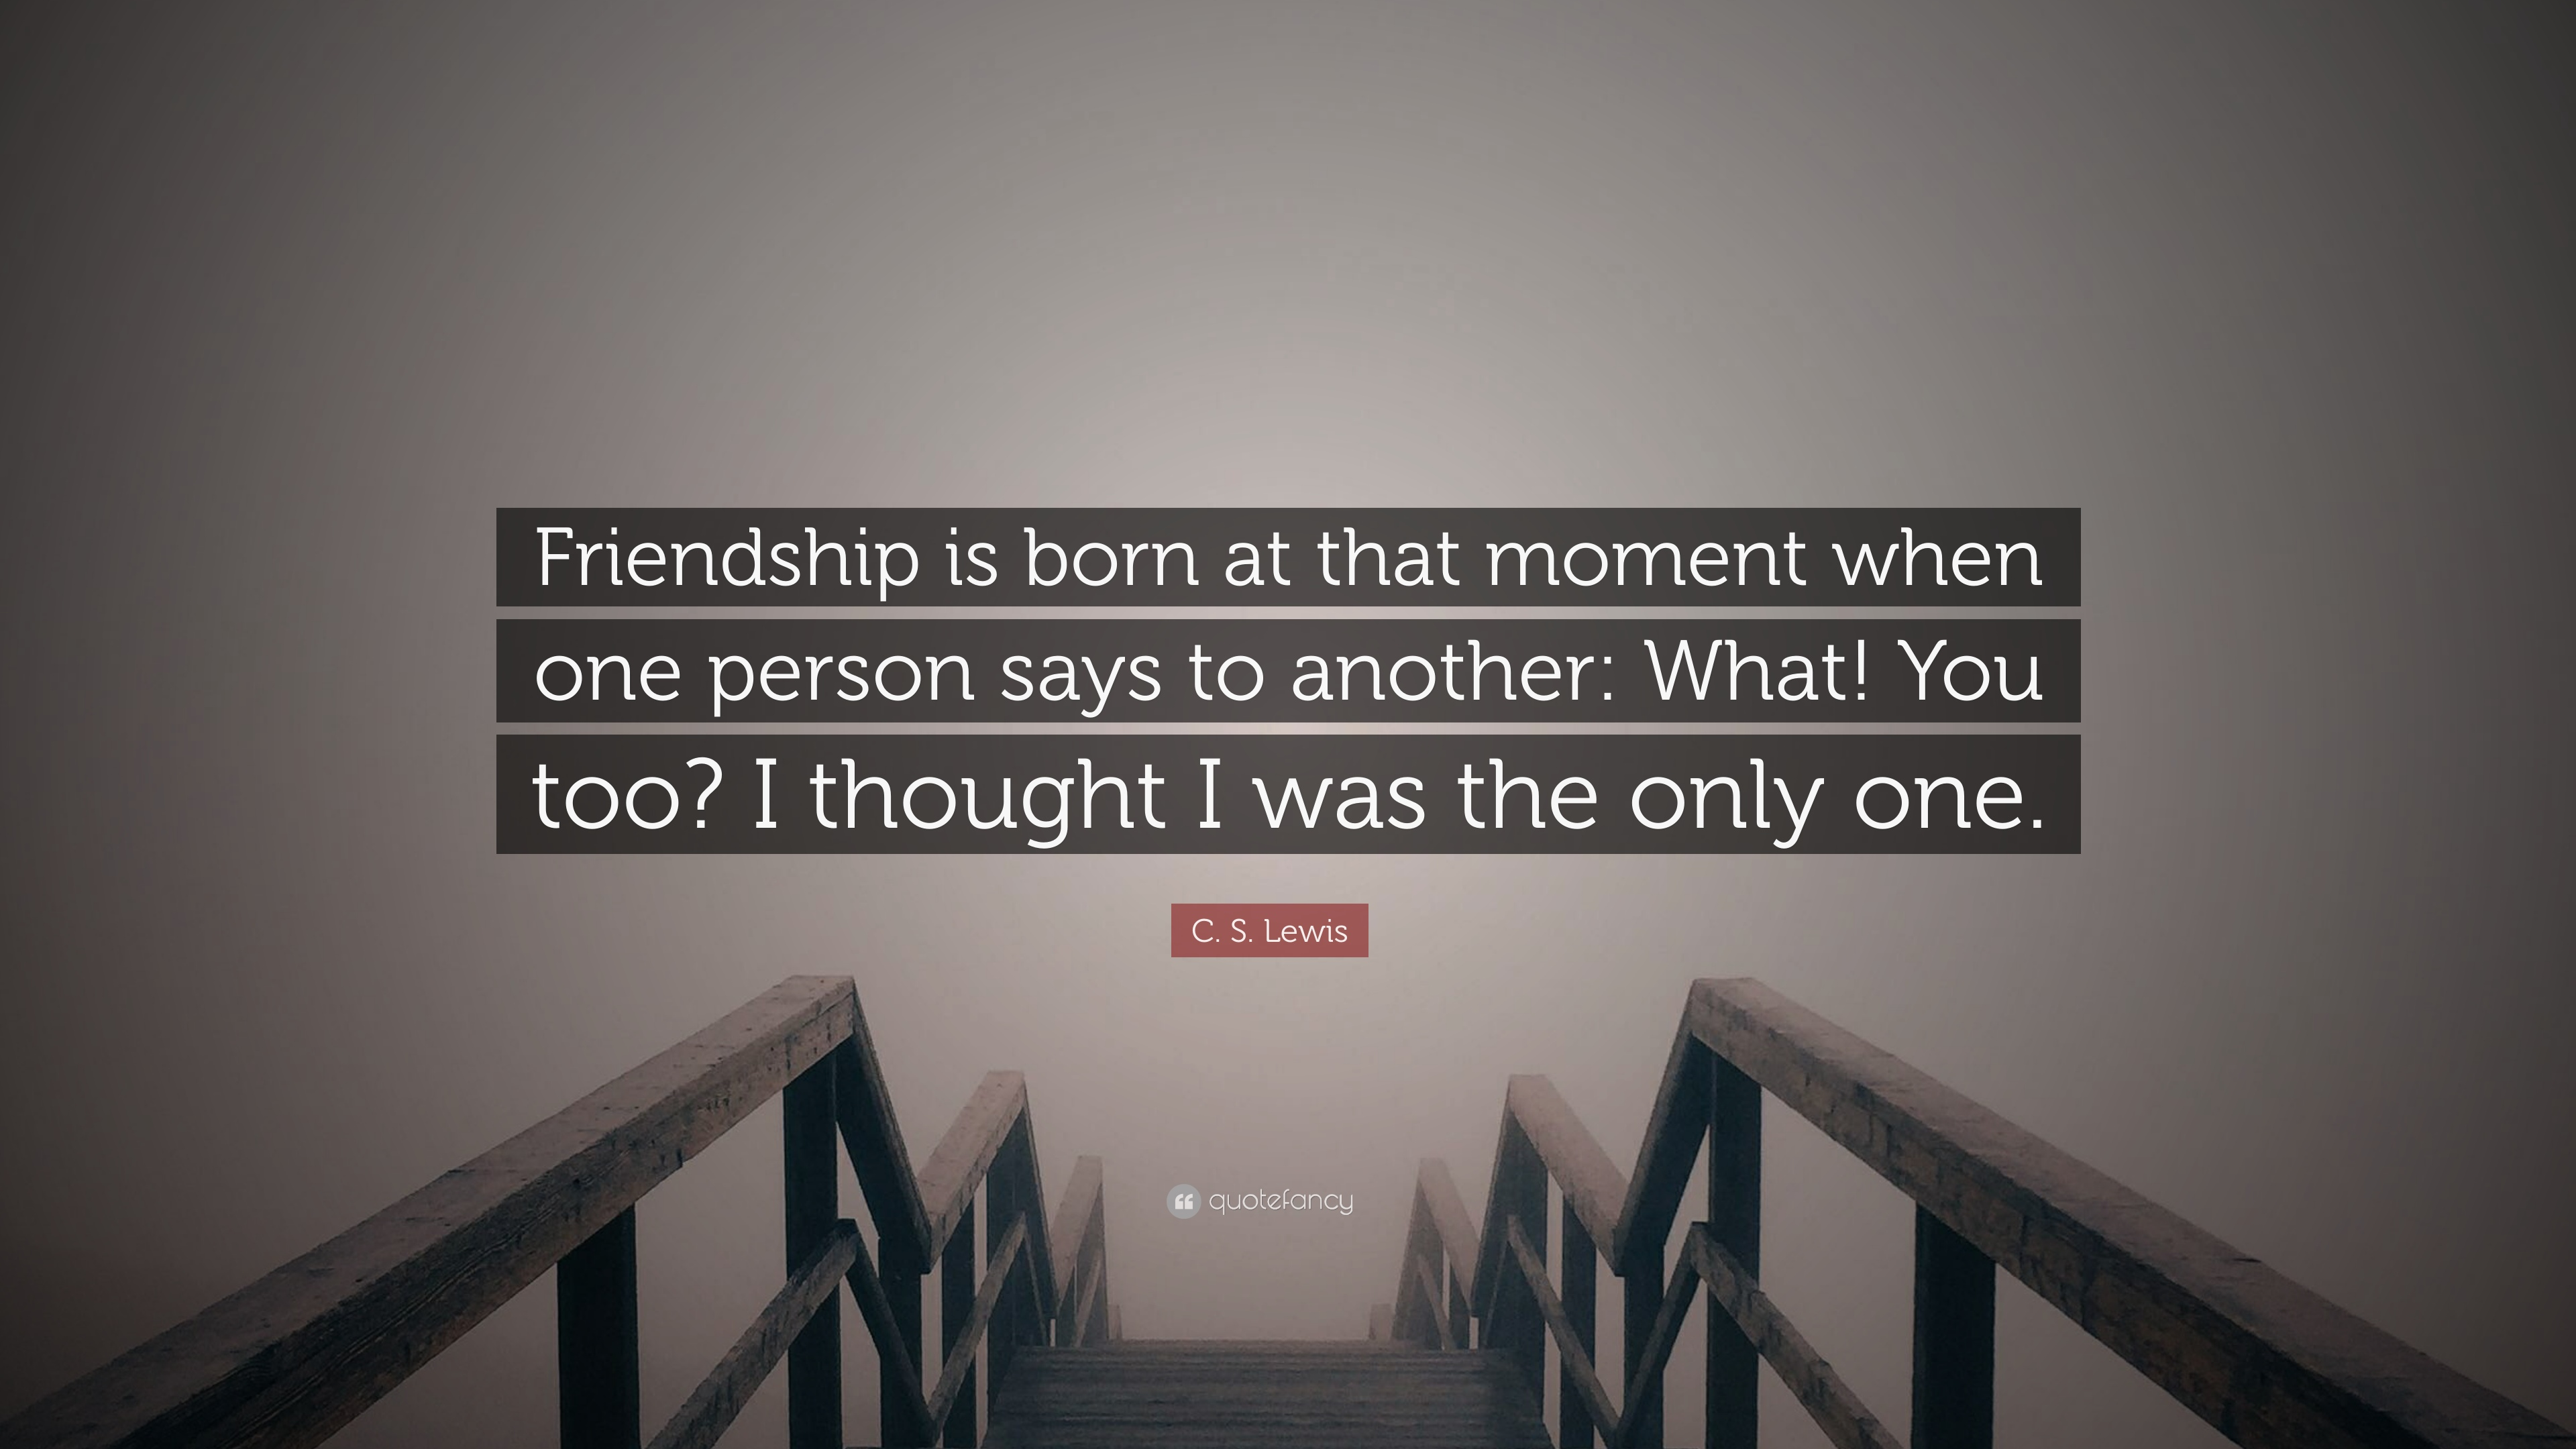 c s lewis quote friendship is born at that moment when one person says to